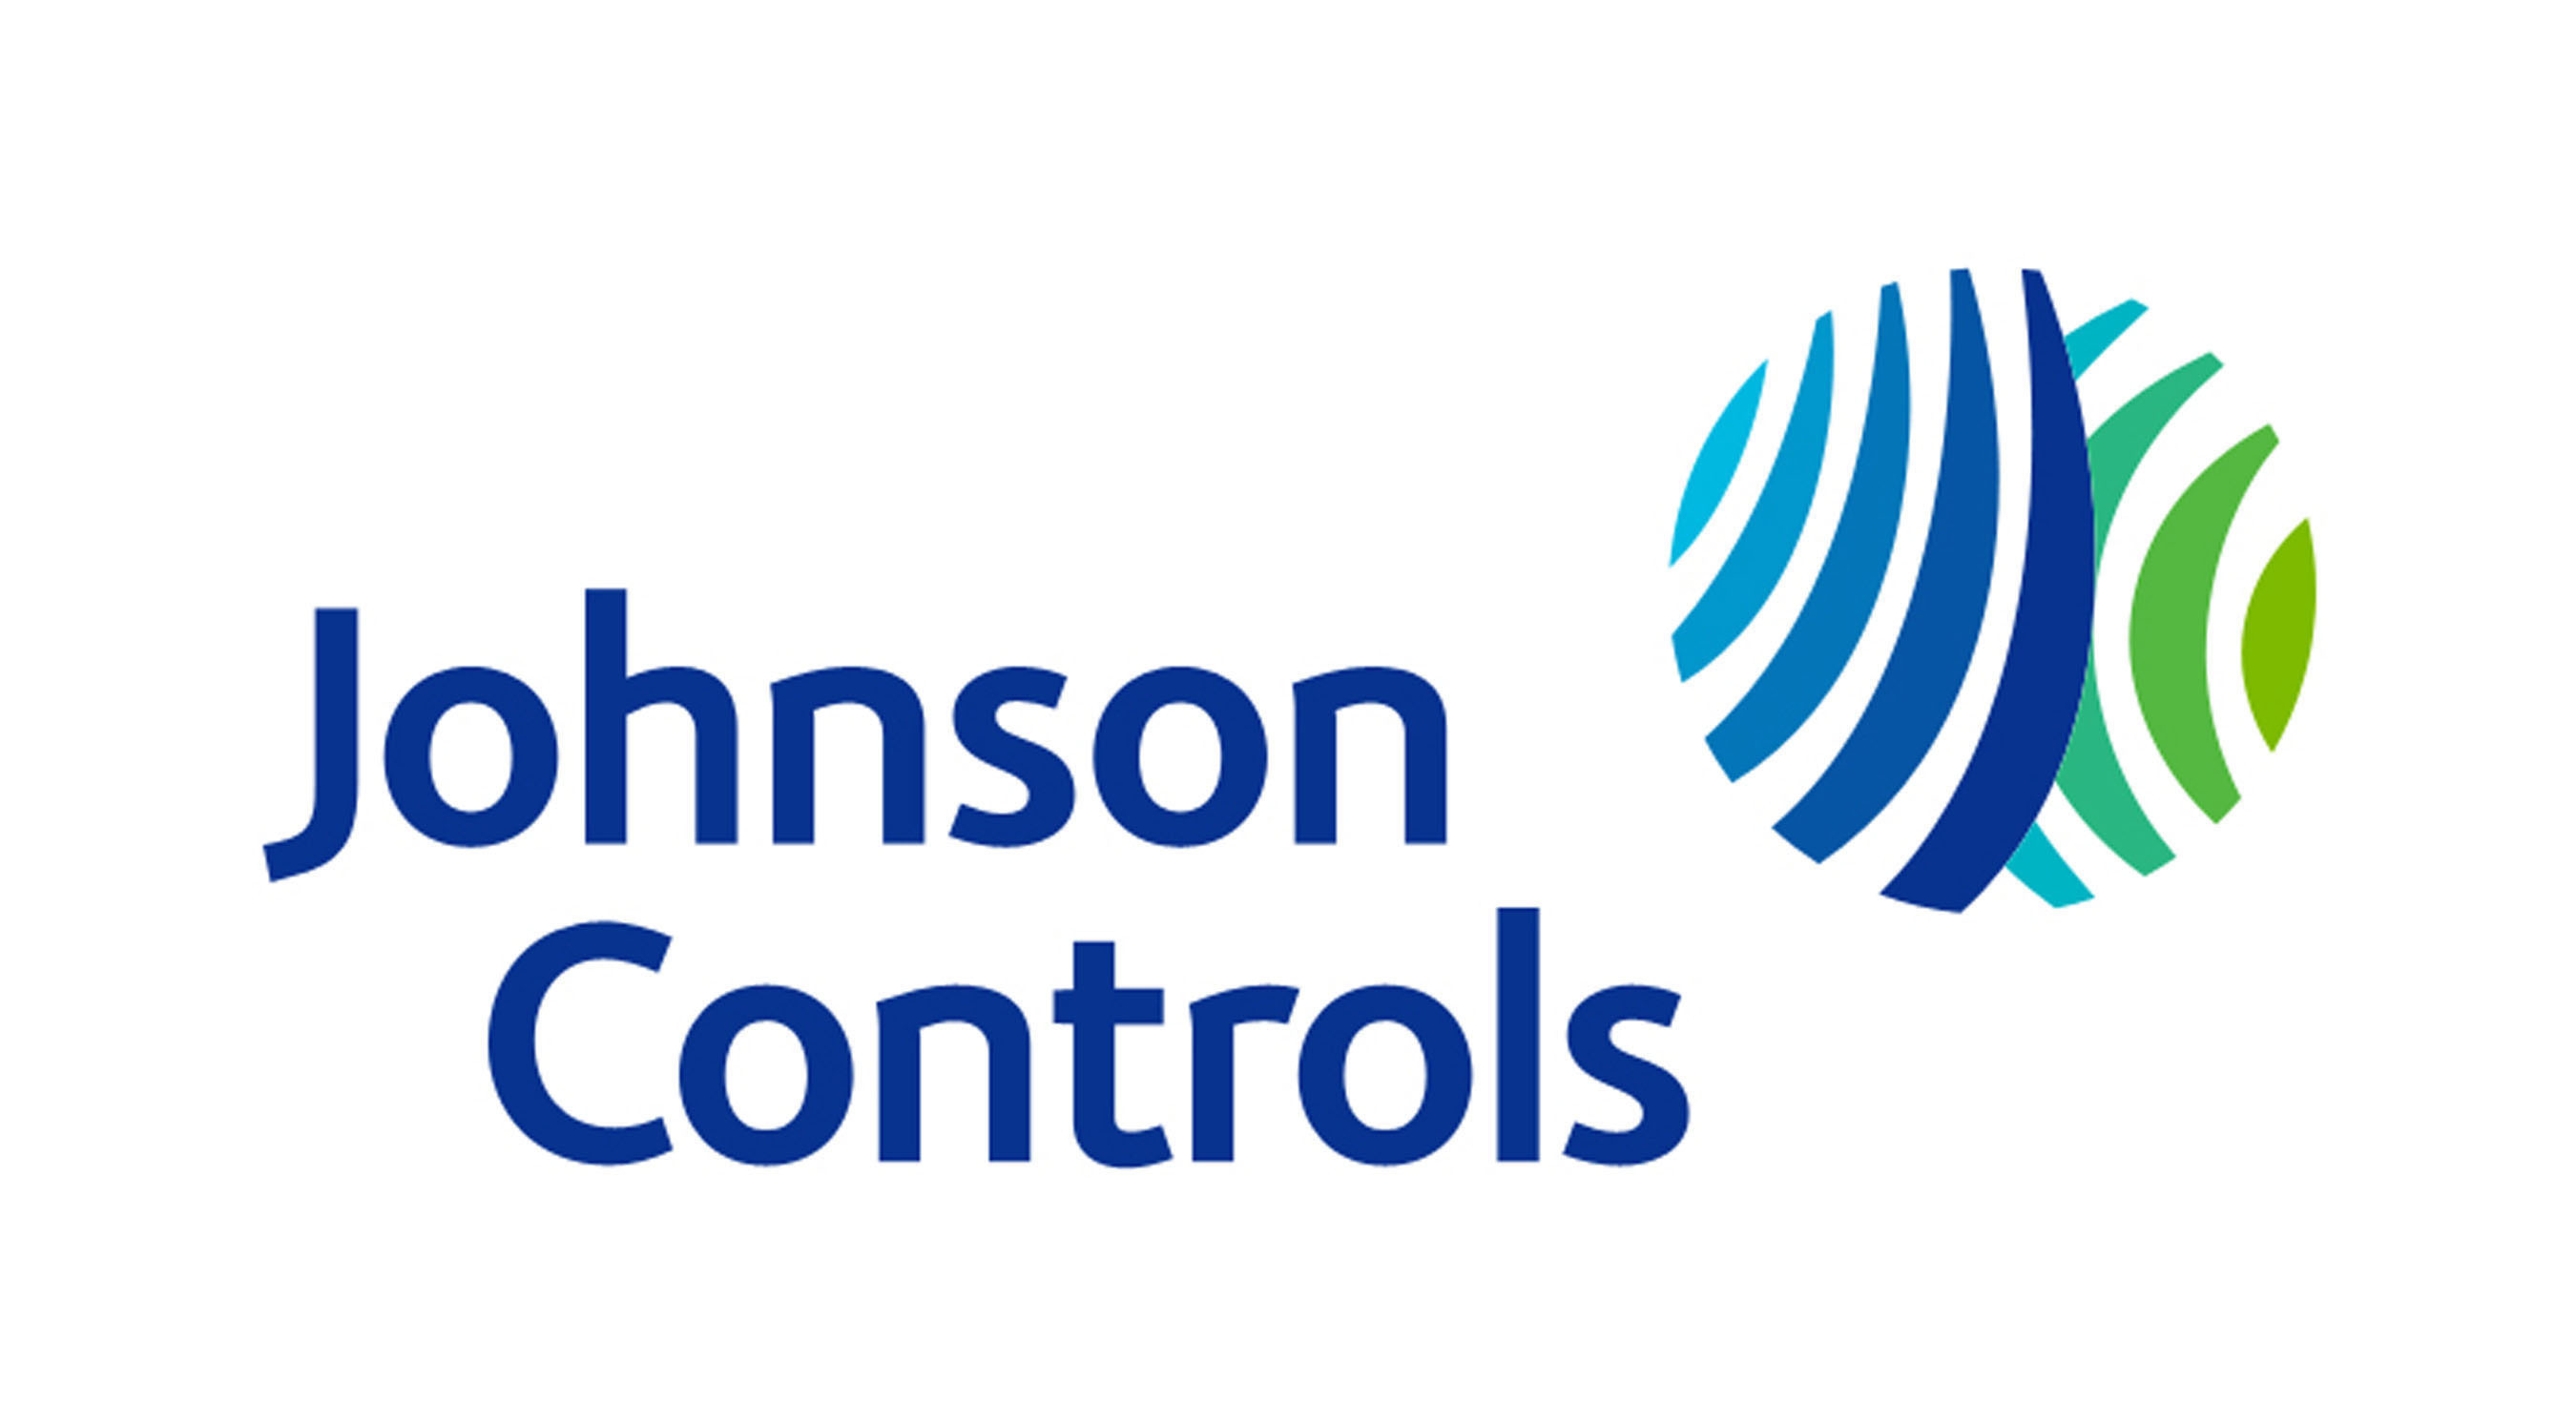 Johnson Controls announces First Quarter 2016 Earnings Conference Call Webcast